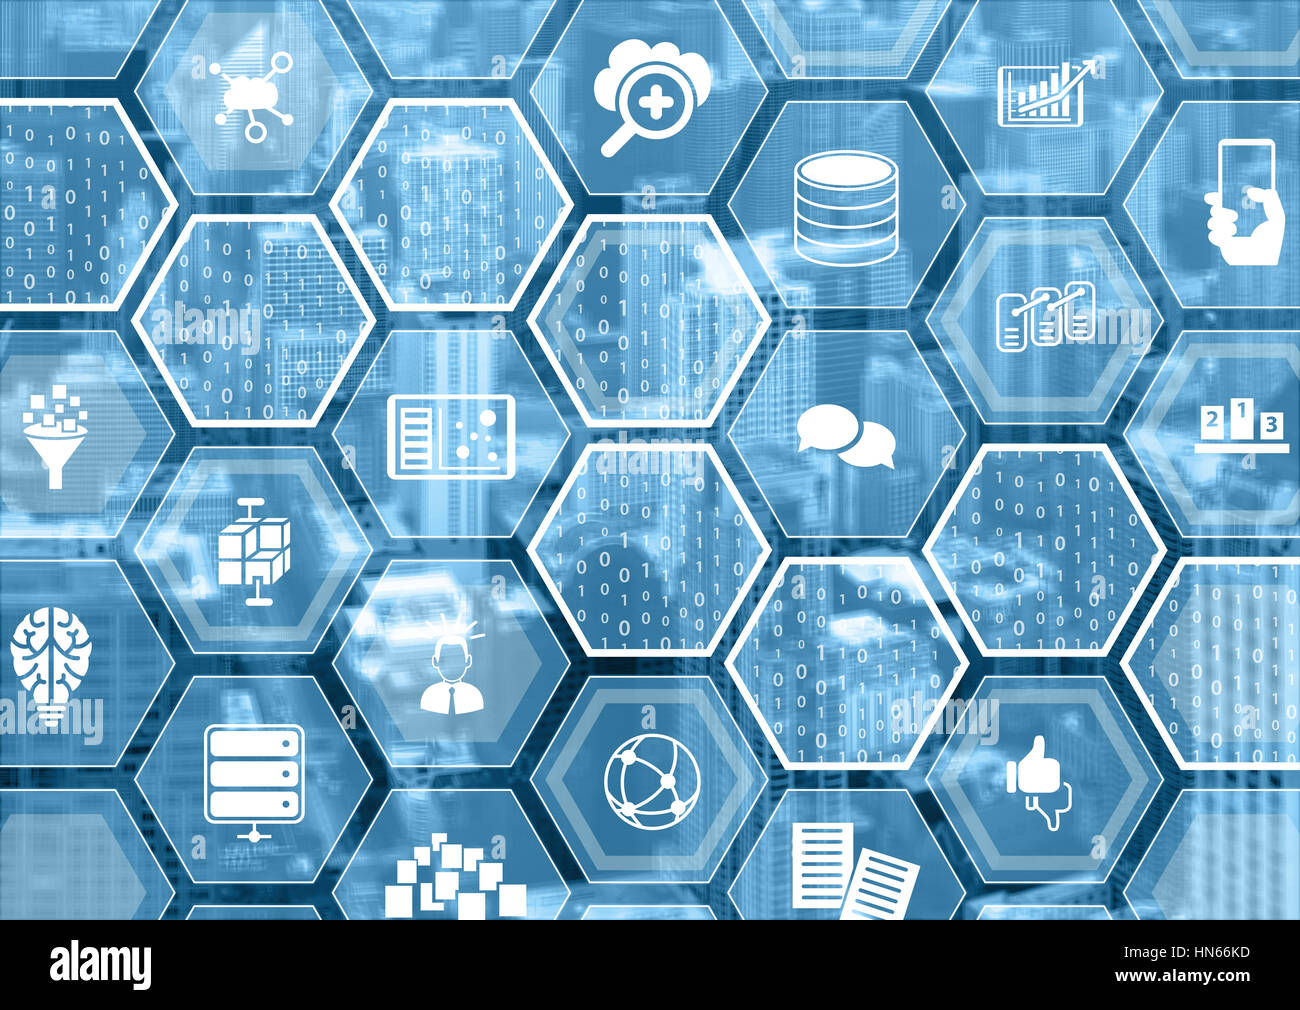 Big data concept as blurred background with hexagon shapes and symbols - Stock Image